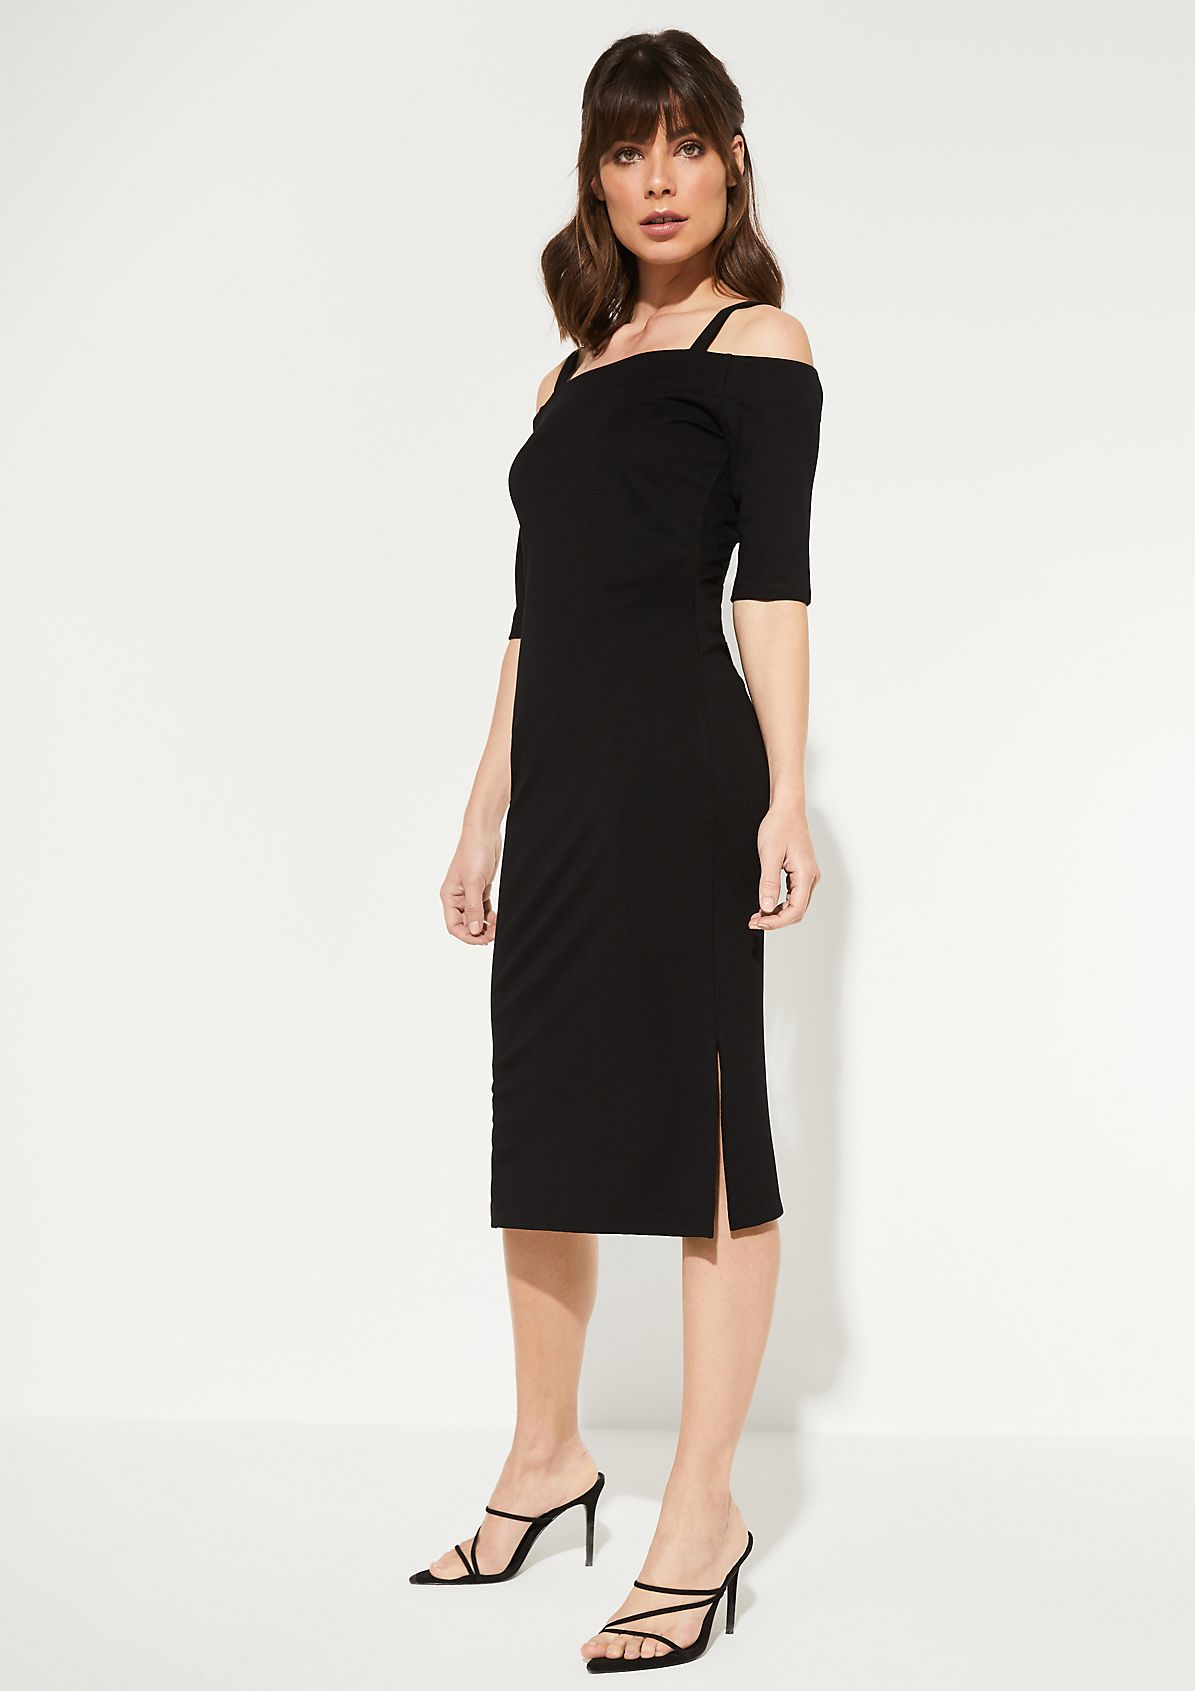 Off-the-shoulder dress with short sleeves from comma